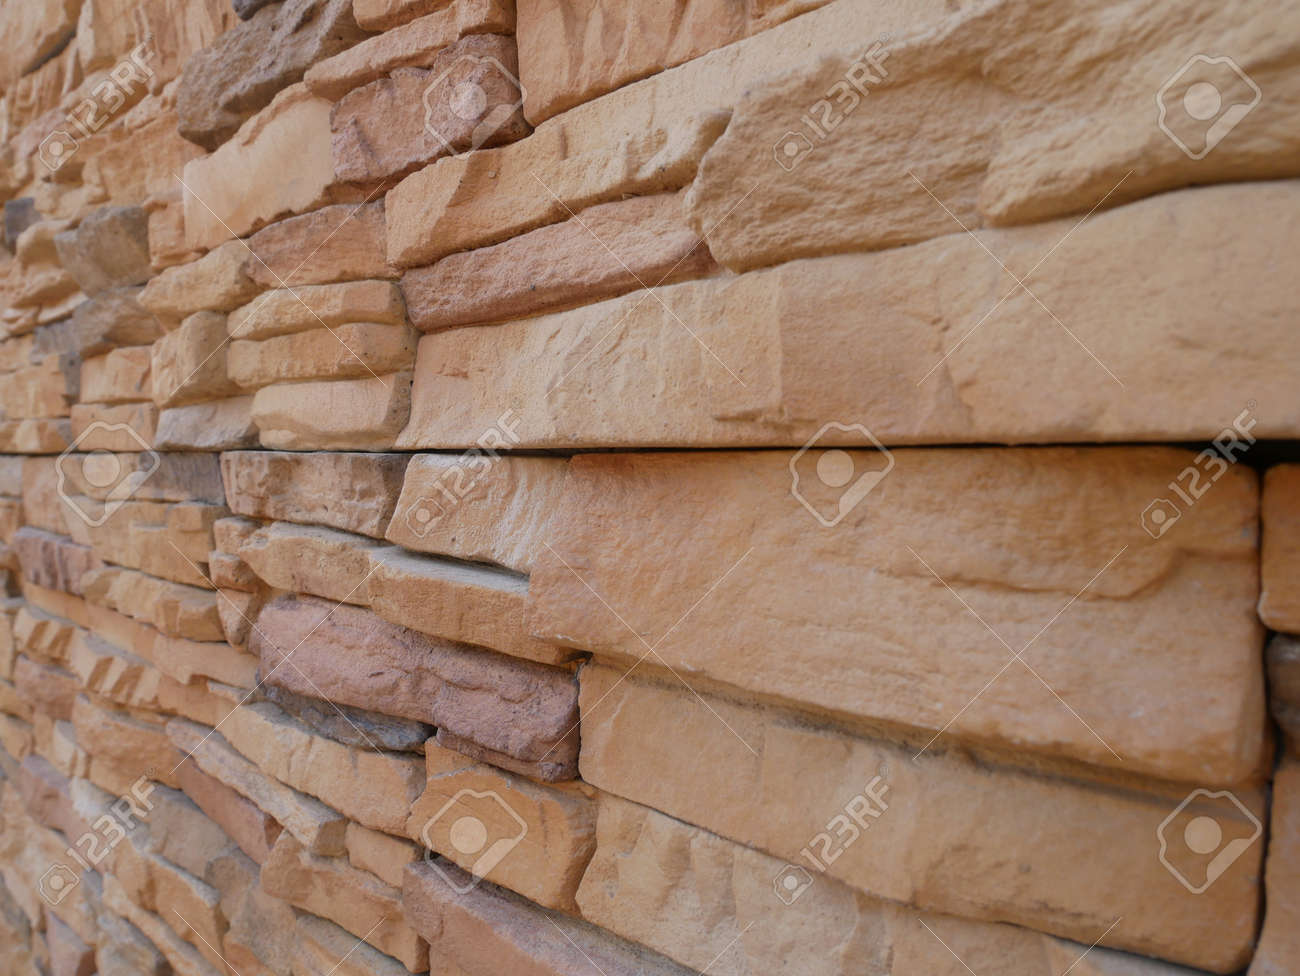 Slate brick in earth tone colour used as wall finishes. Installed overlap according to the method recommended by the manufacturer to get the maximum effect. - 164584797